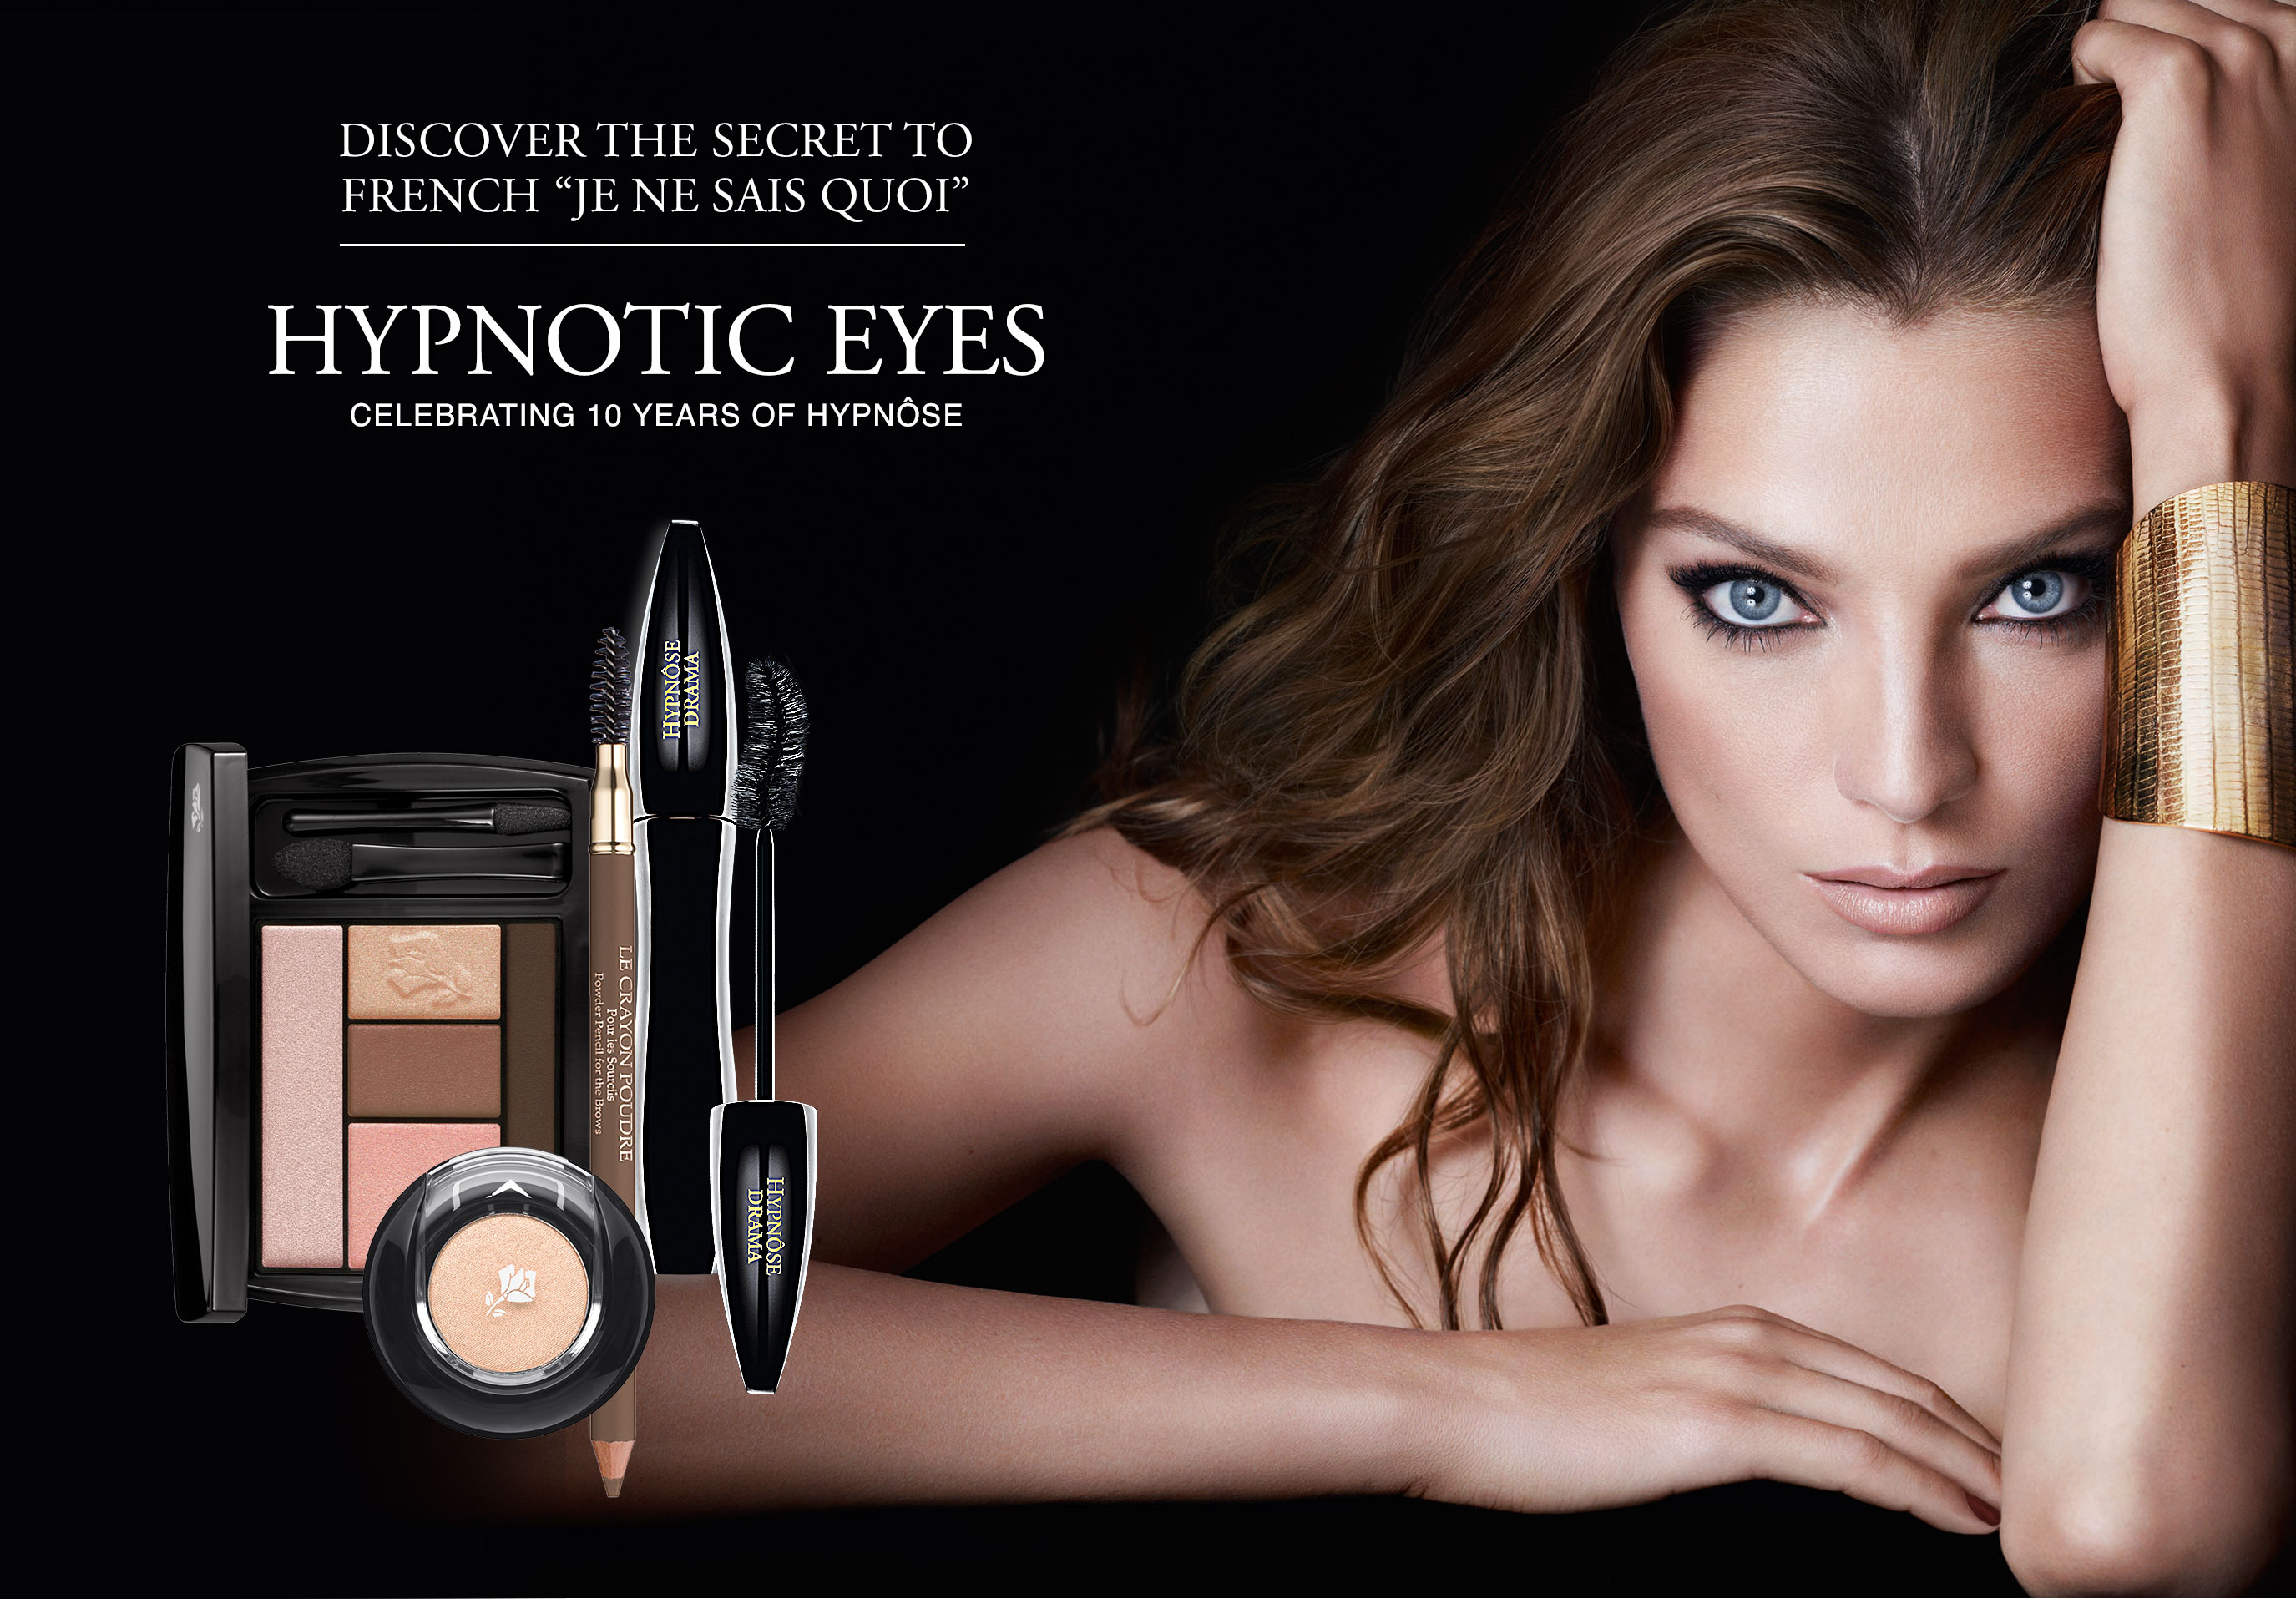 hypnotic eyes luxetips every woman deserves to live the luxe life